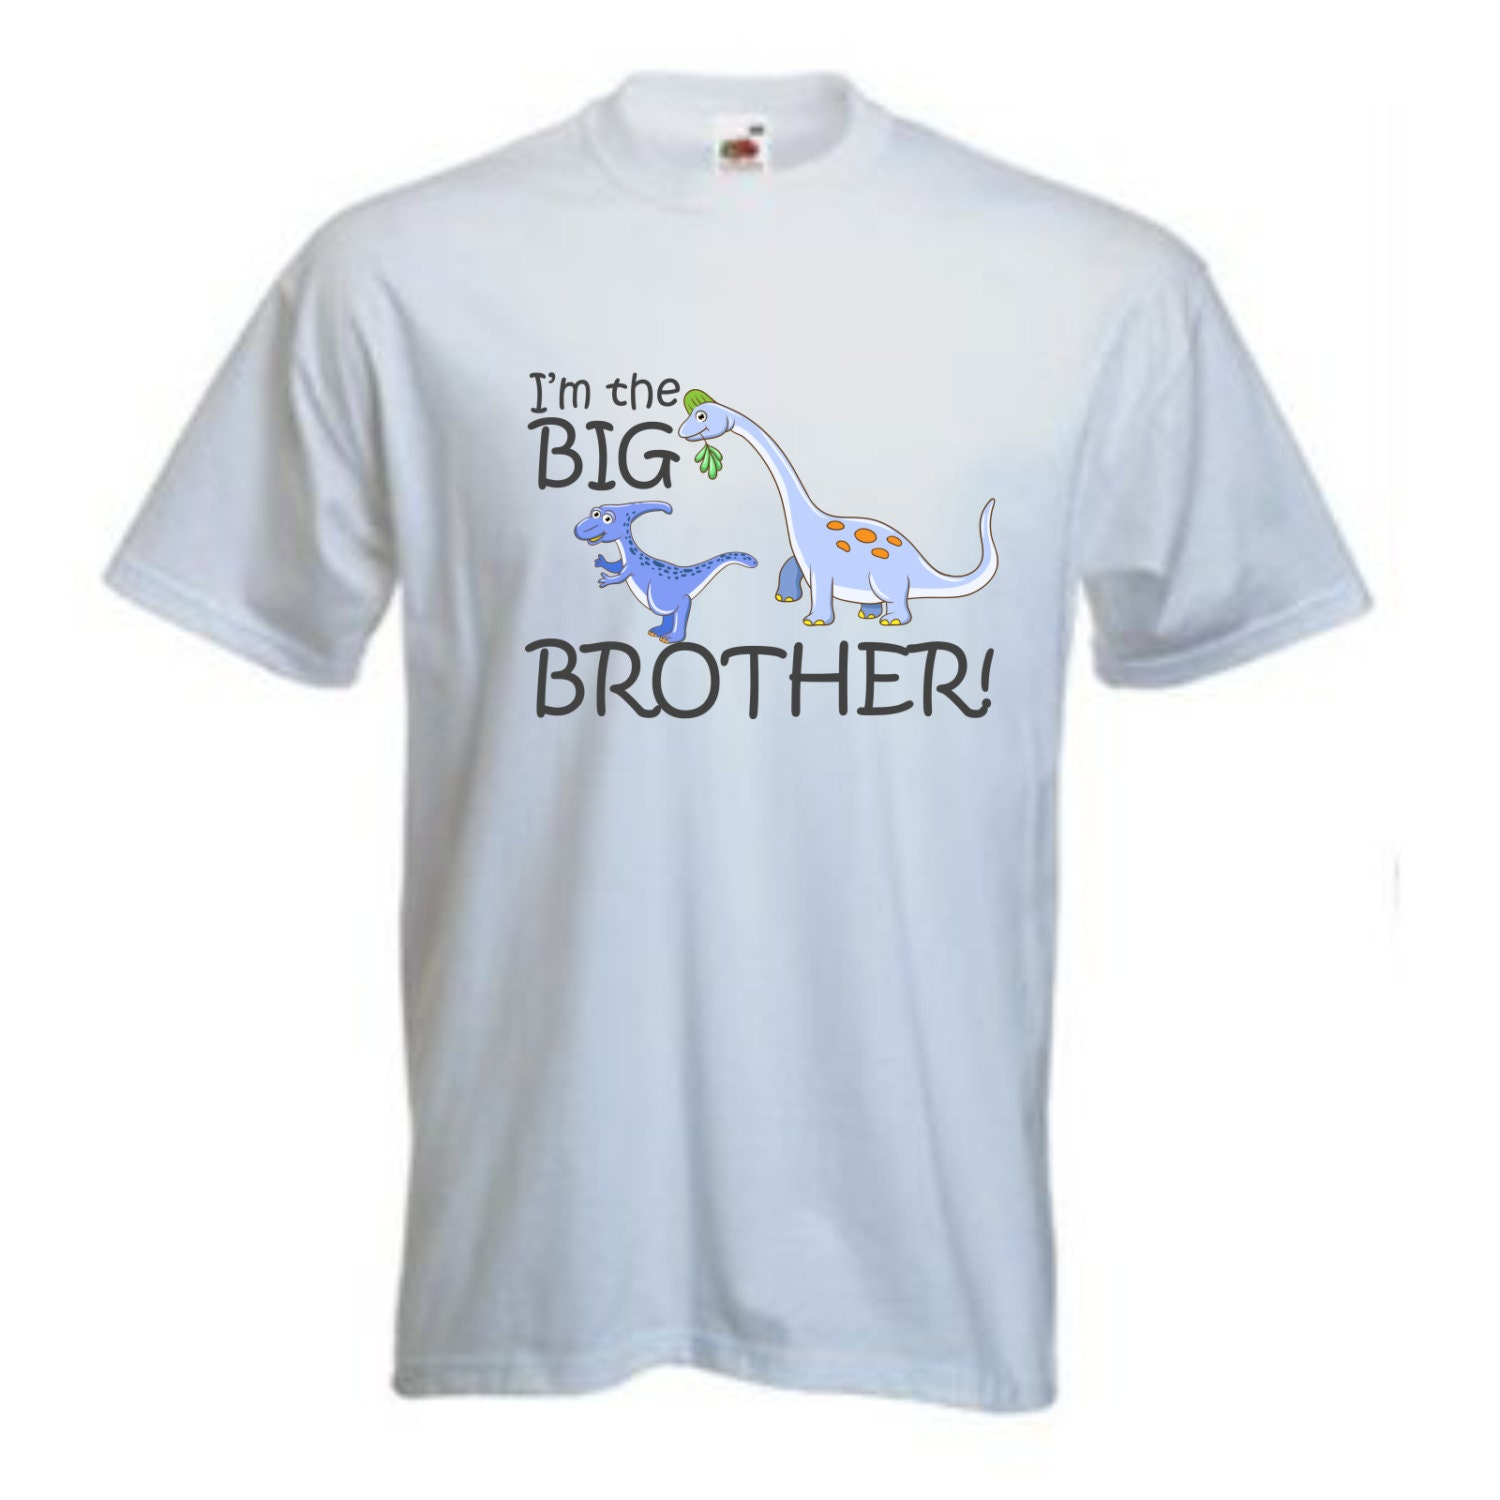 Personalised childrens t shirt Im the Big Brother Dinosaur Design